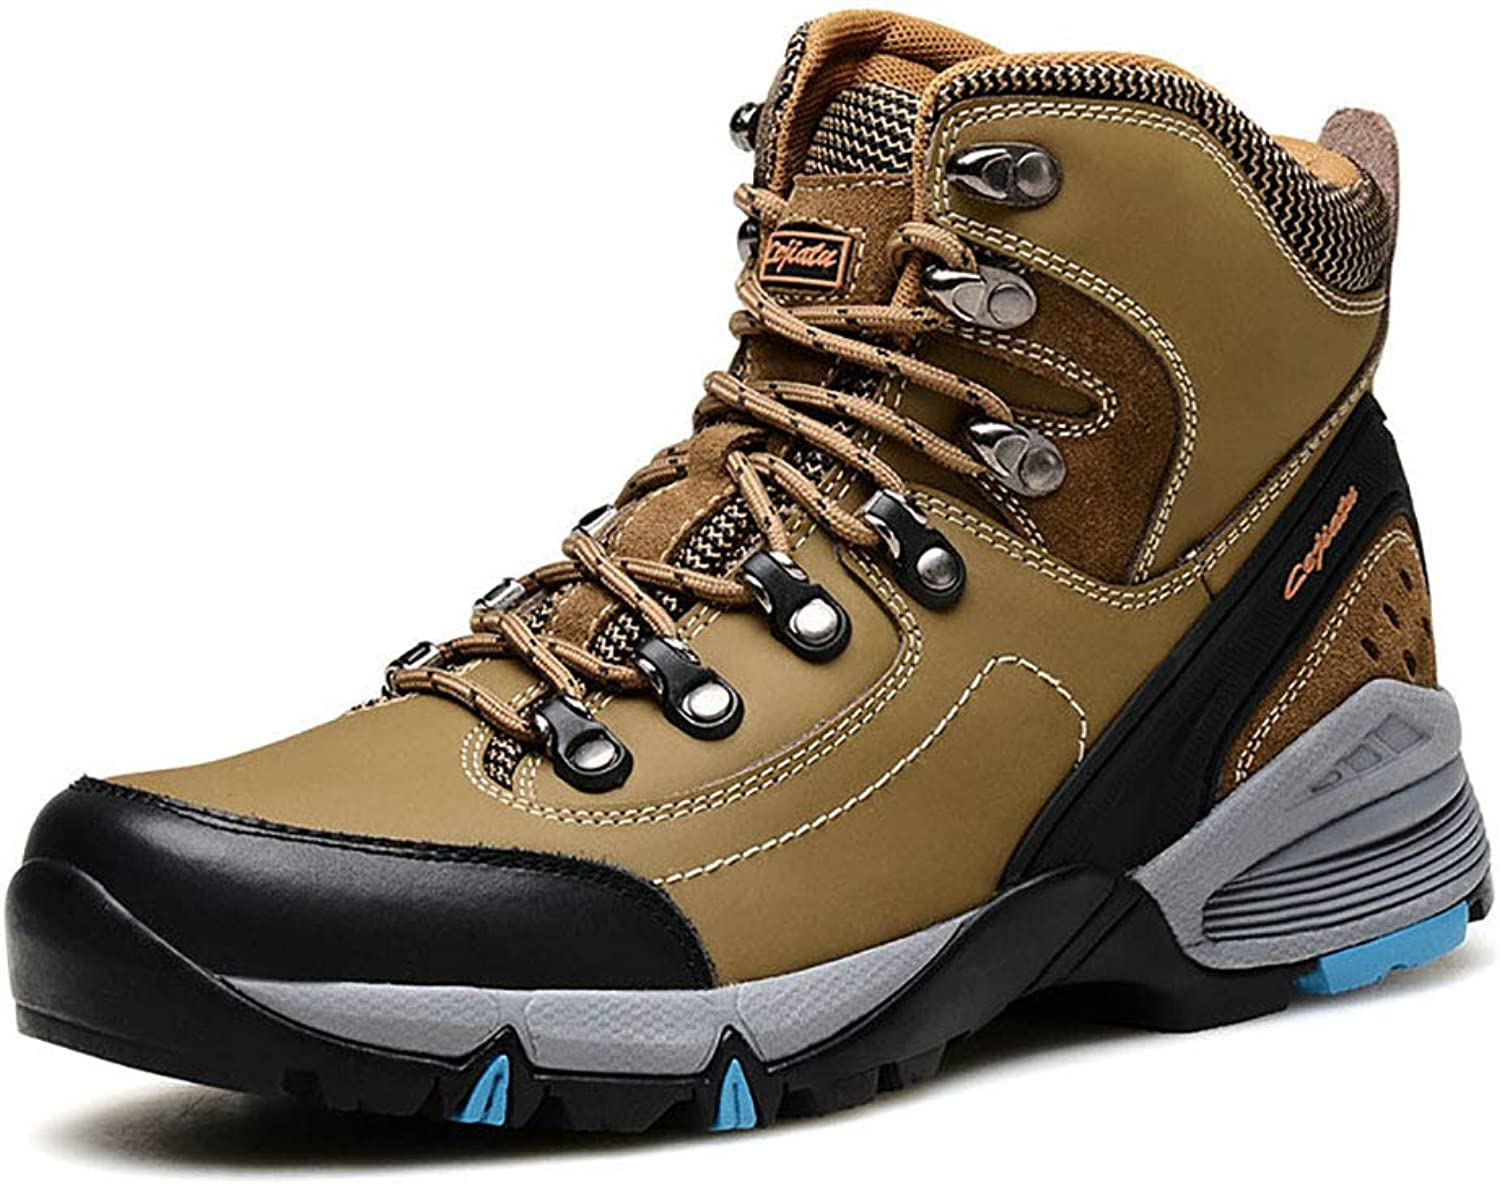 Men's shoes Winter Warm Snow Boots Leather Outdoor Hiking Trekking shoes Lace up Waterproof Non Slip Antiskid,khaki,39